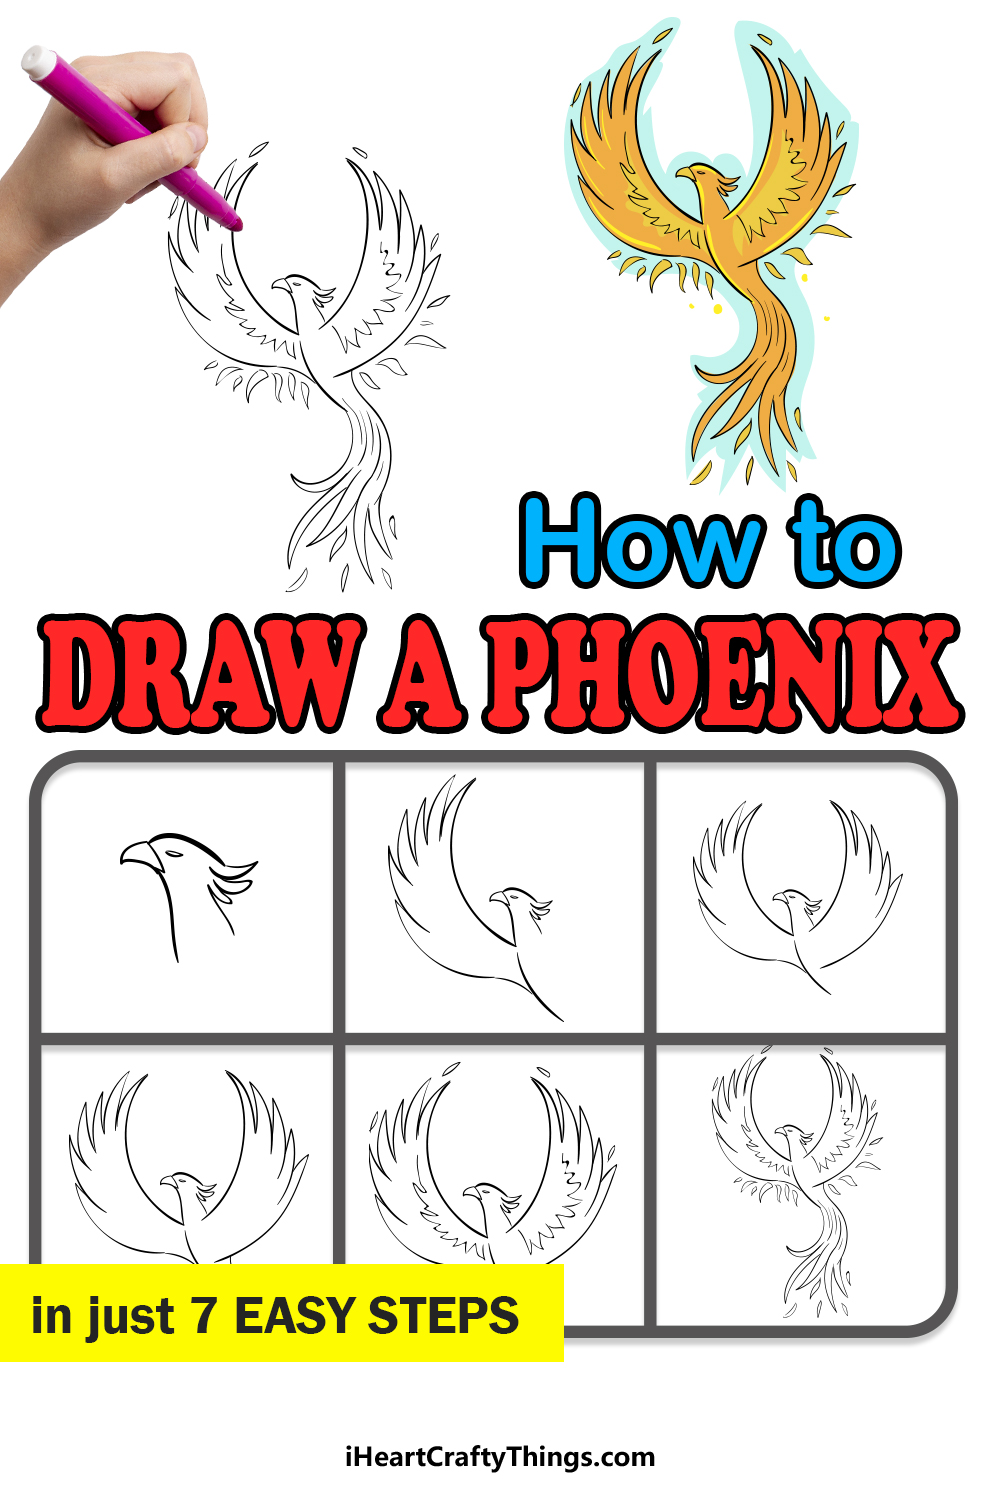 how to draw a phoenix in 7 easy steps